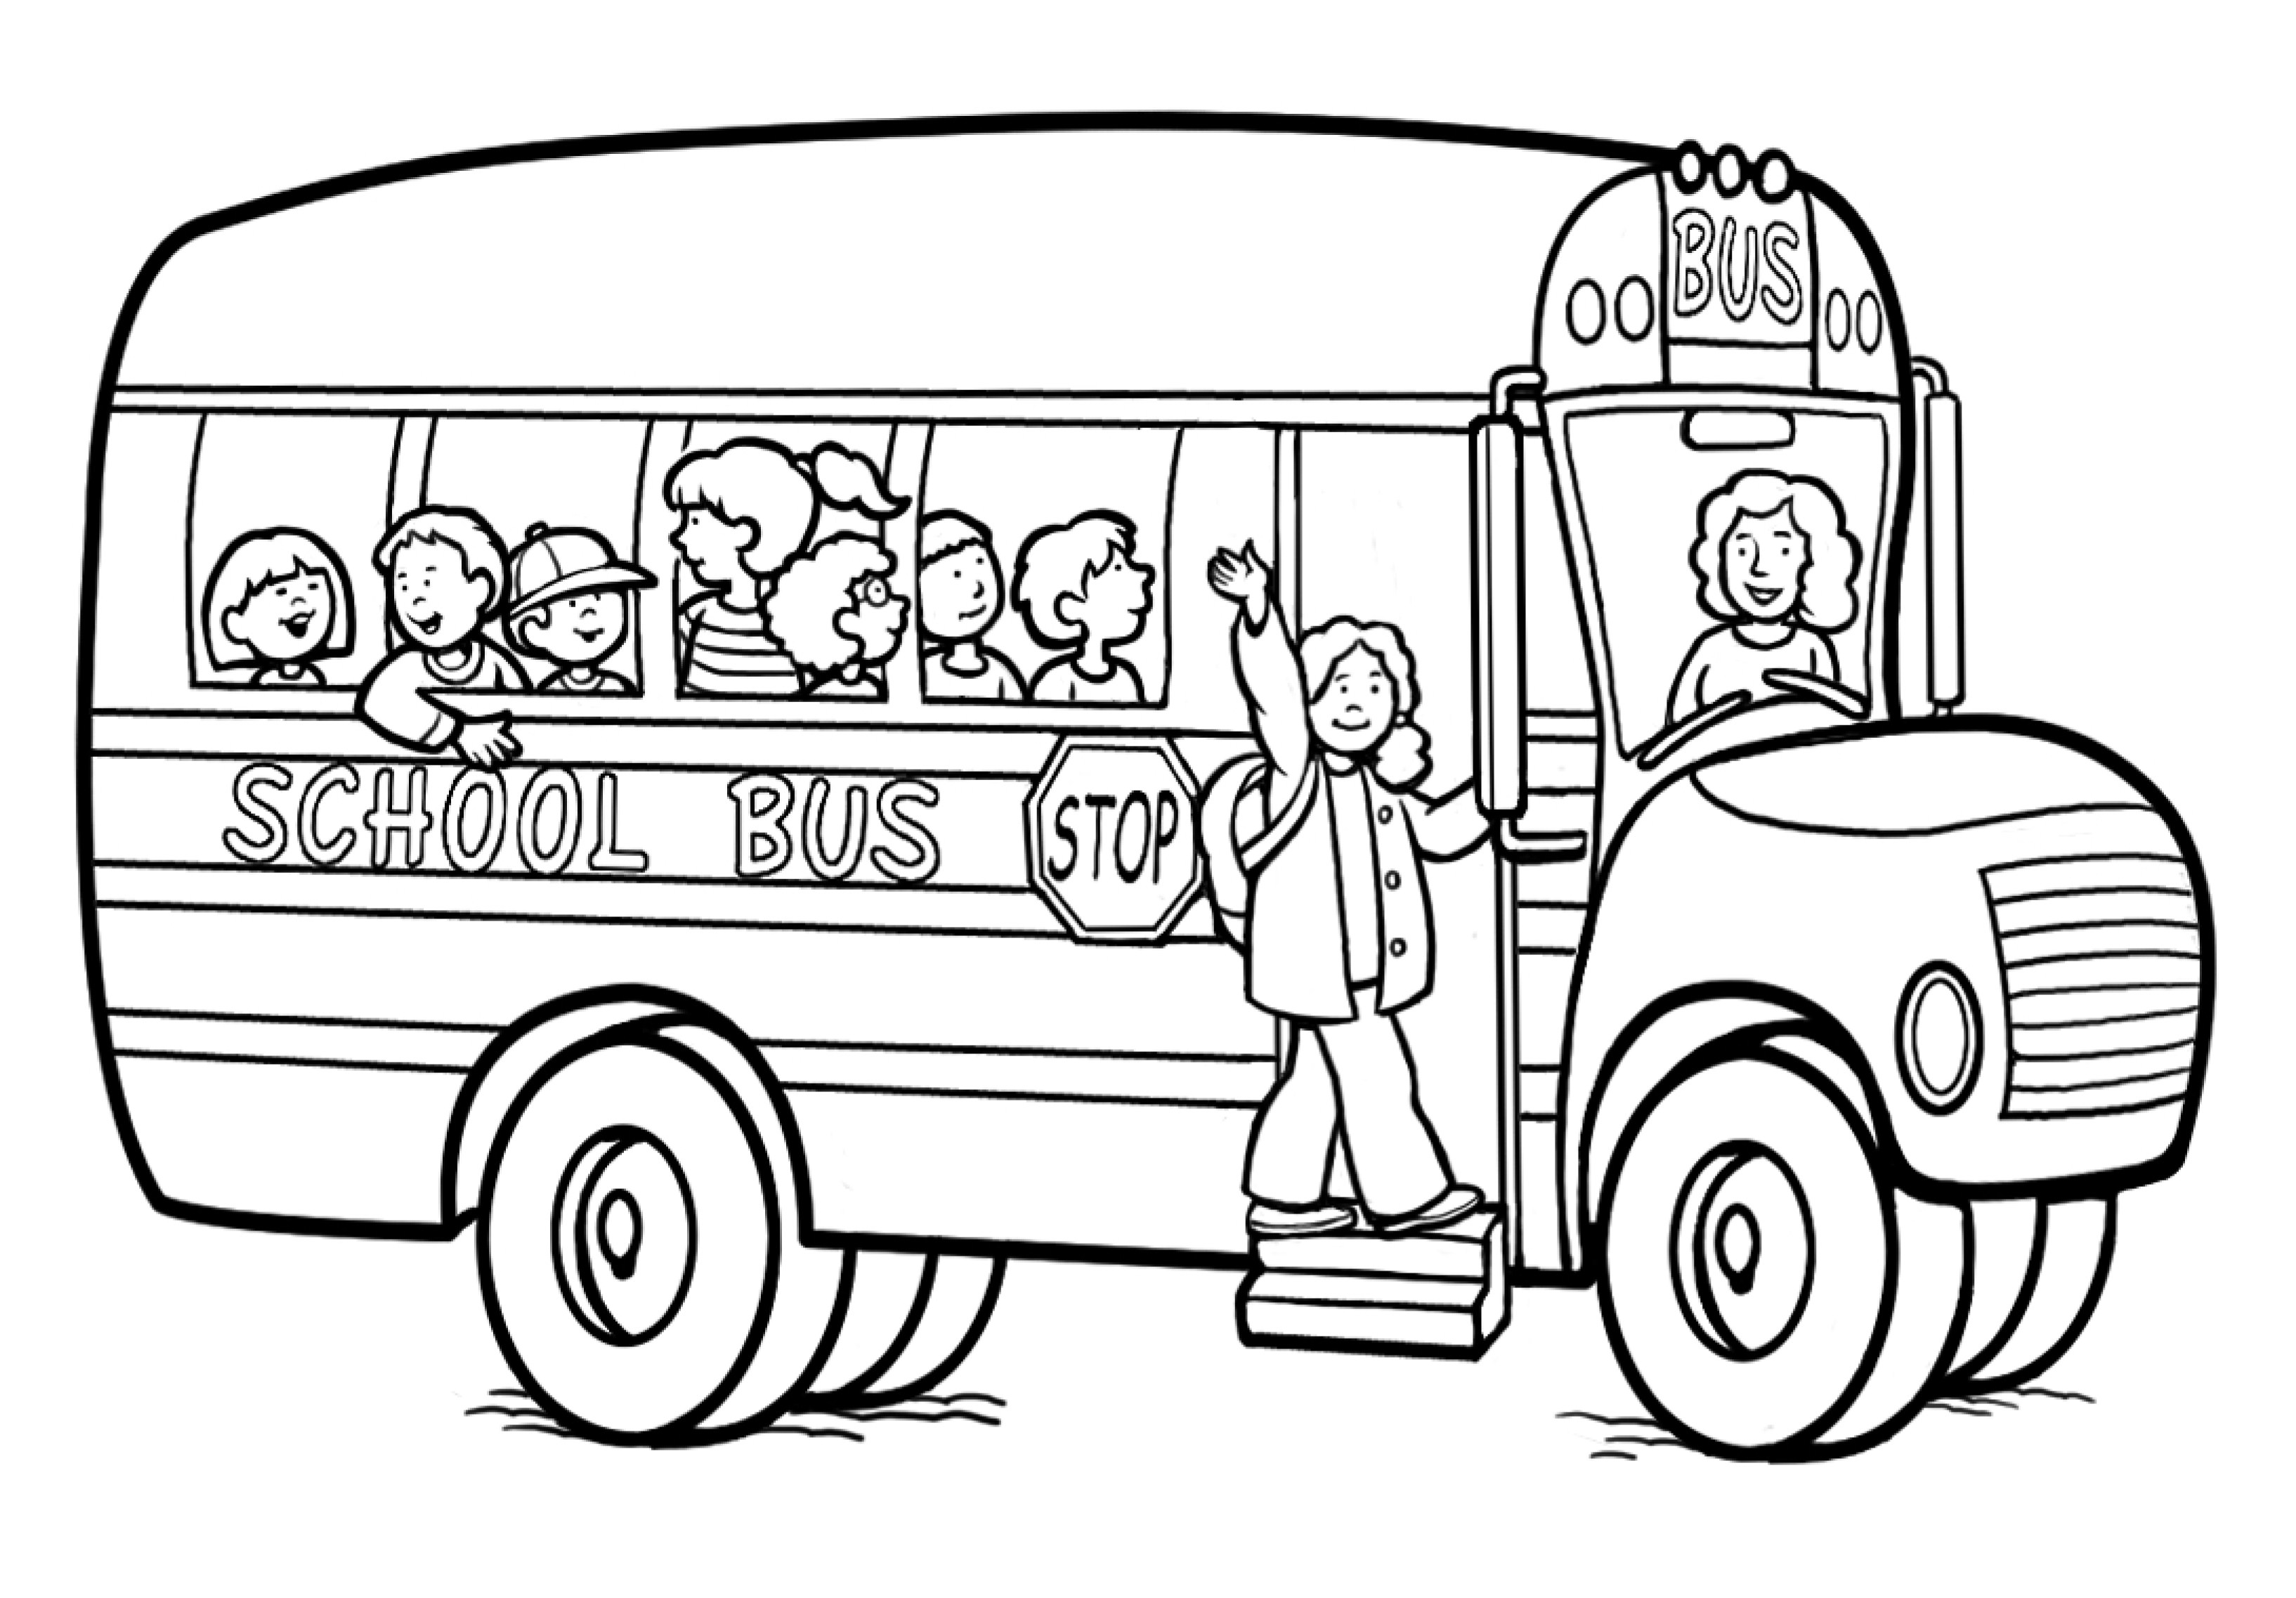 bus coloring pages printable school bus coloring page for kids cool2bkids coloring bus pages